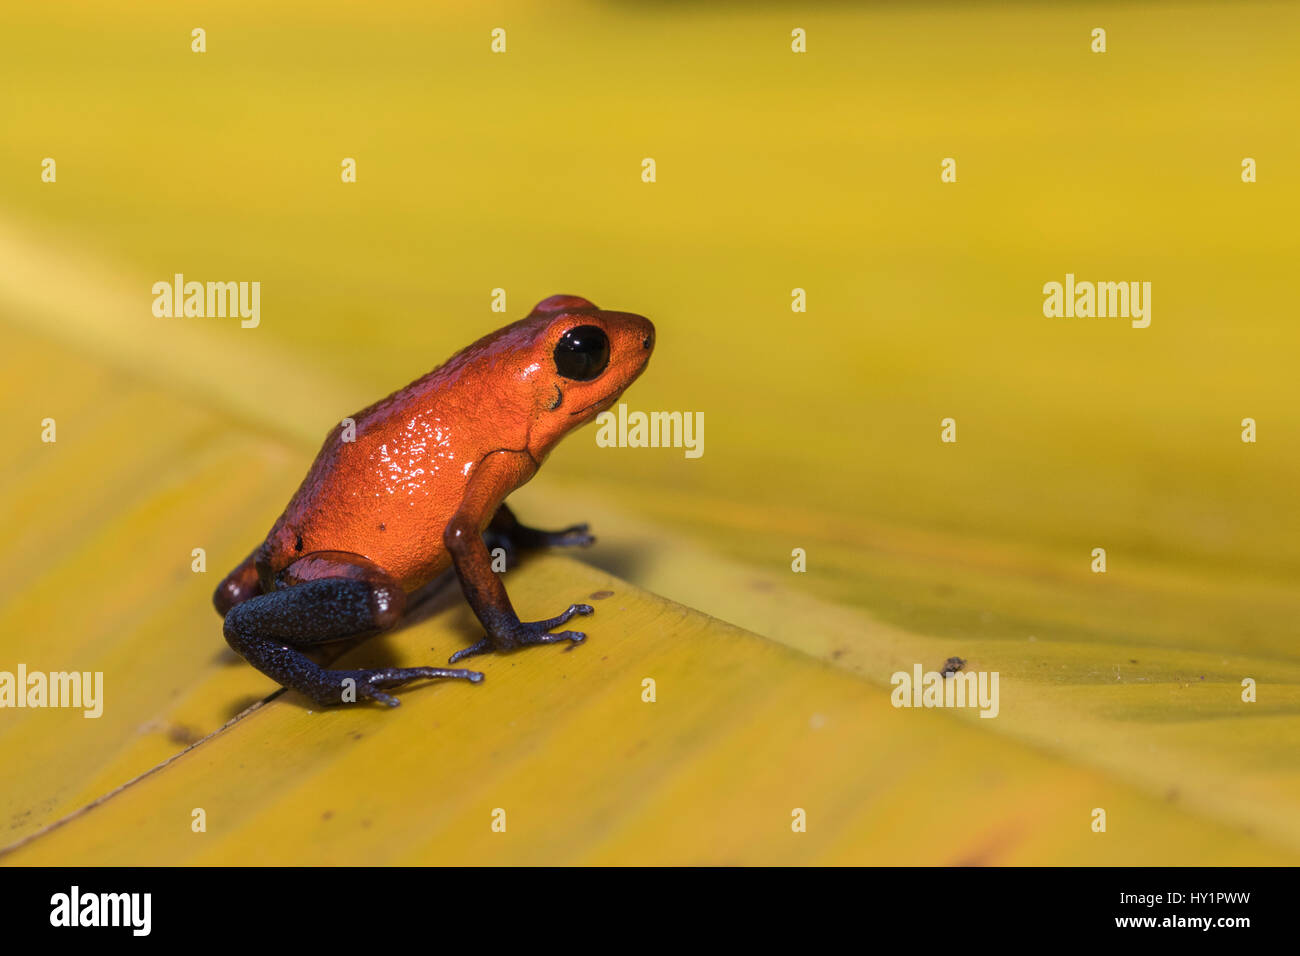 Blue-jeans Frog or Strawberry Poison-dart Frog, Dendrobates pumilio, sitting on a yellow banan leaf in rainforest Stock Photo